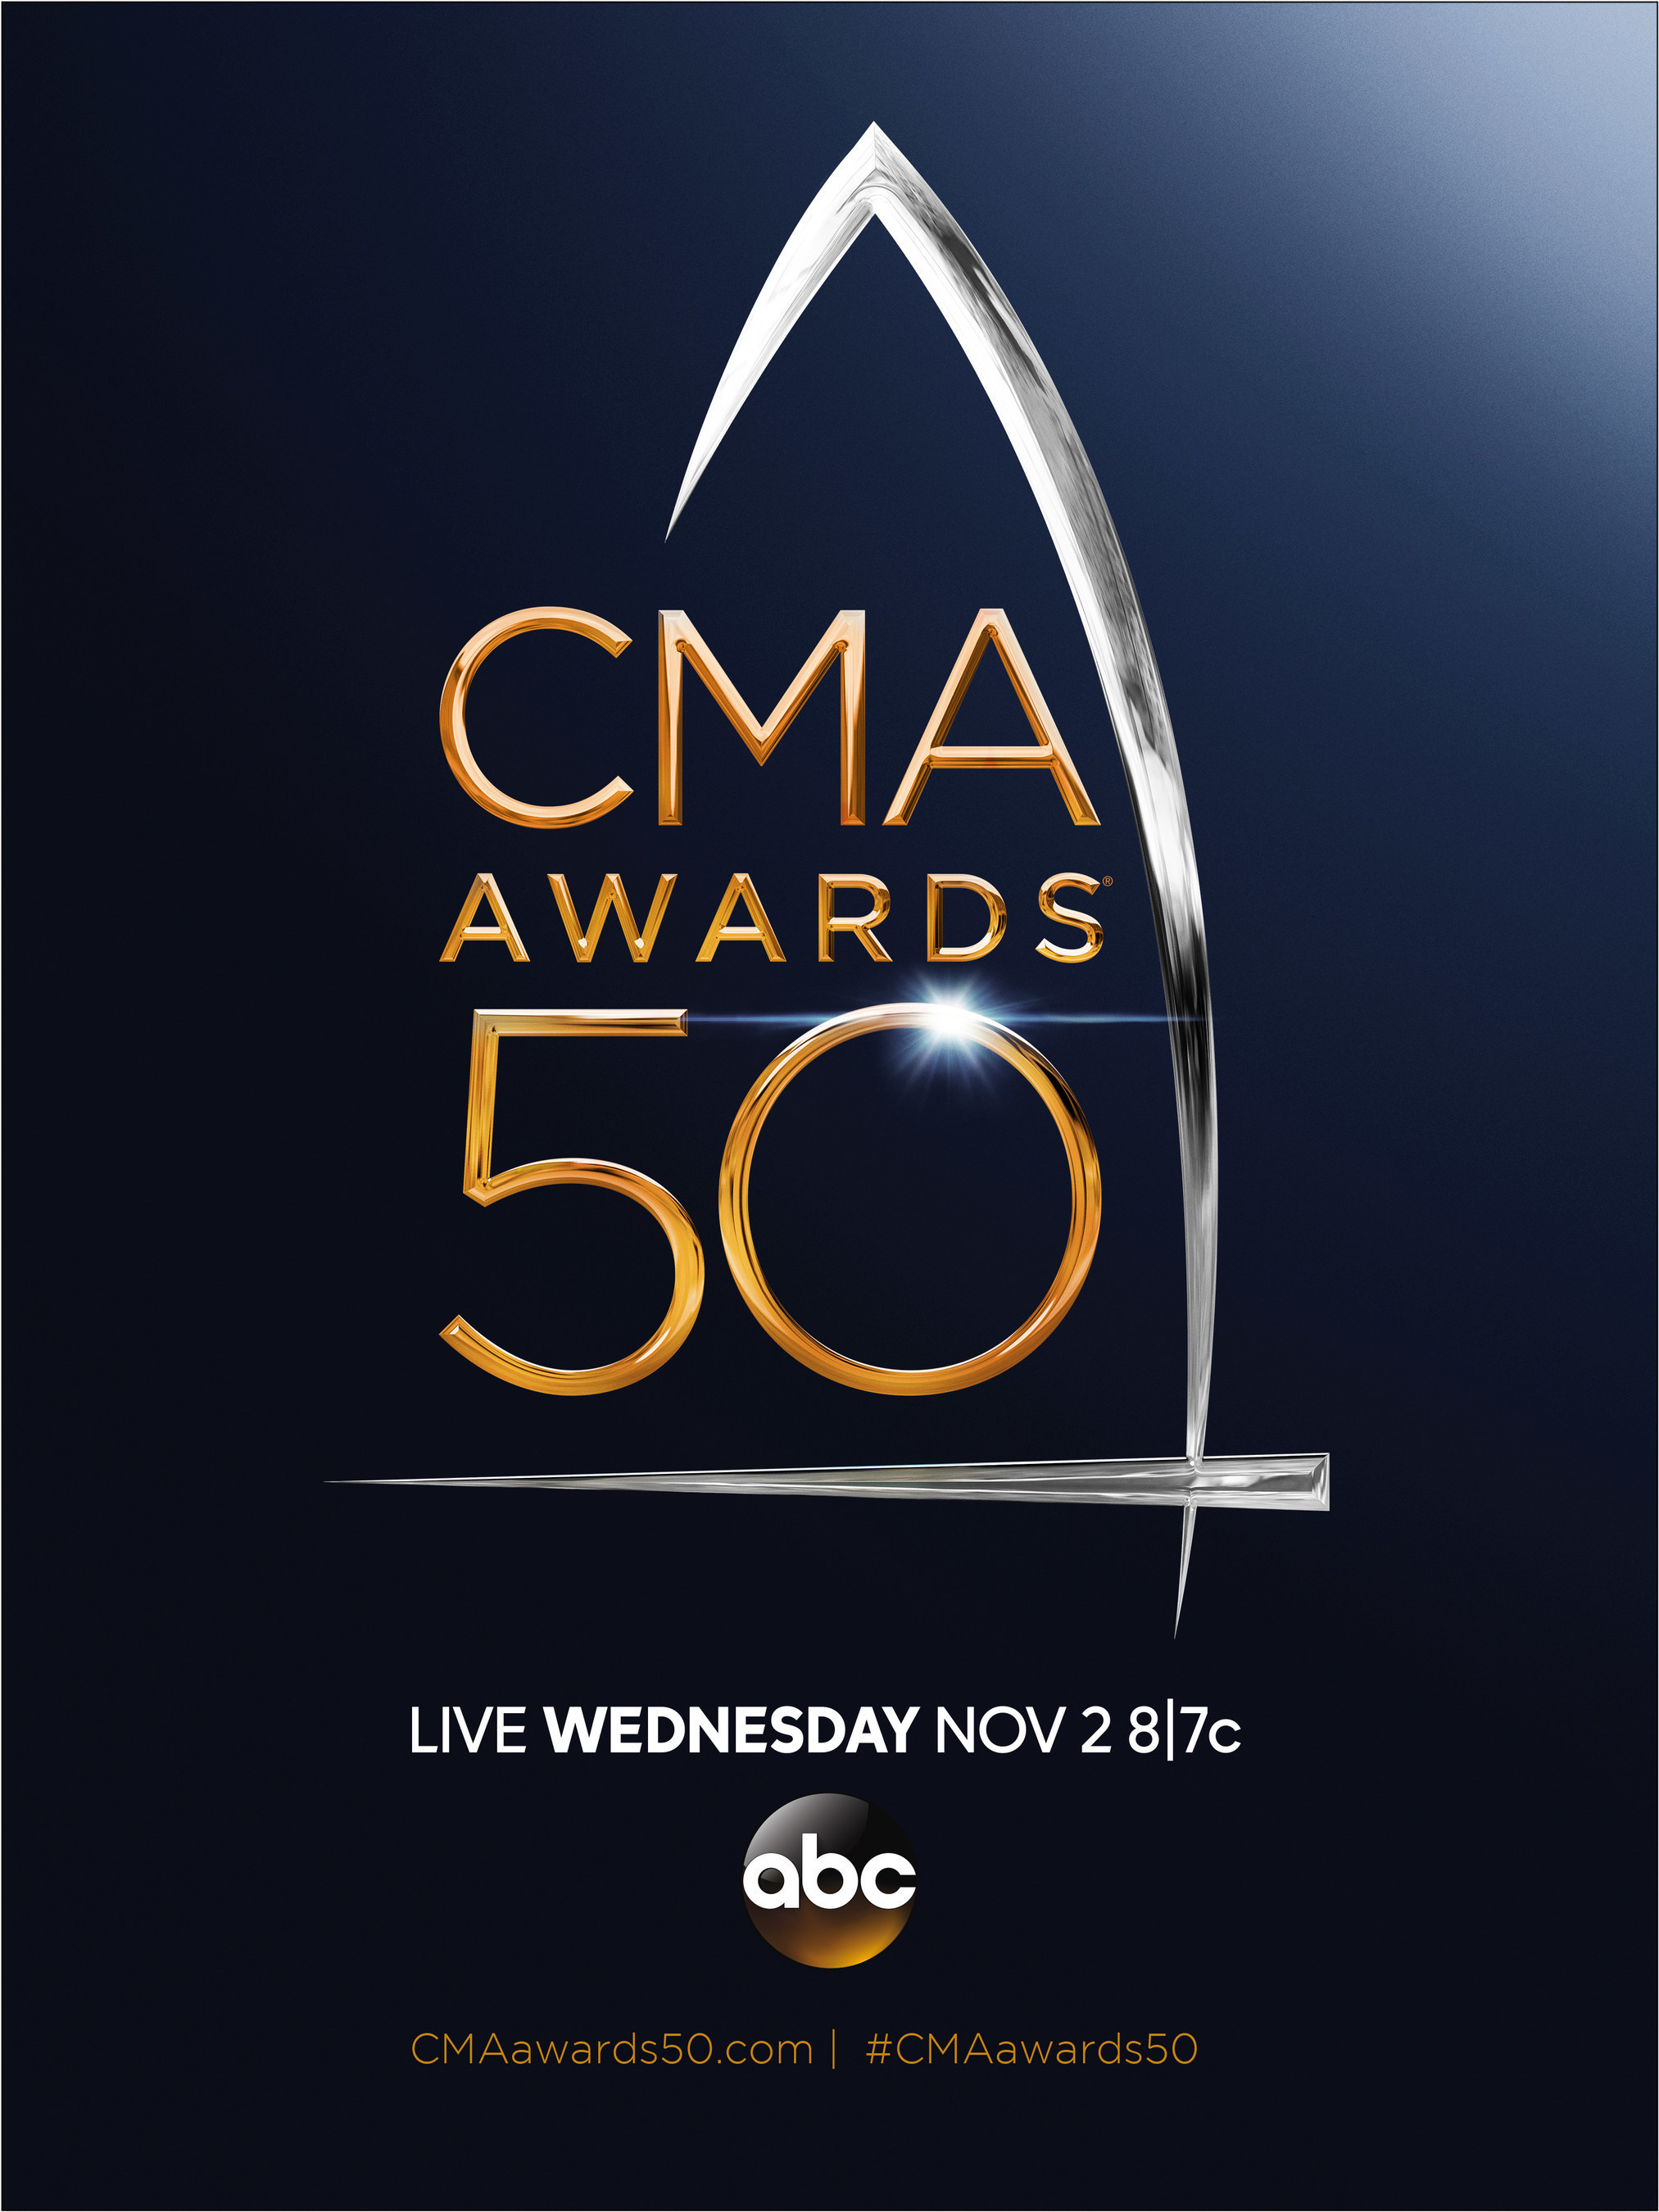 Eric Church, Maren Morris, And Chris Stapleton Lead The List Of Finalists For 'The 50th Annual CMA Awards' With Five Nominations Each